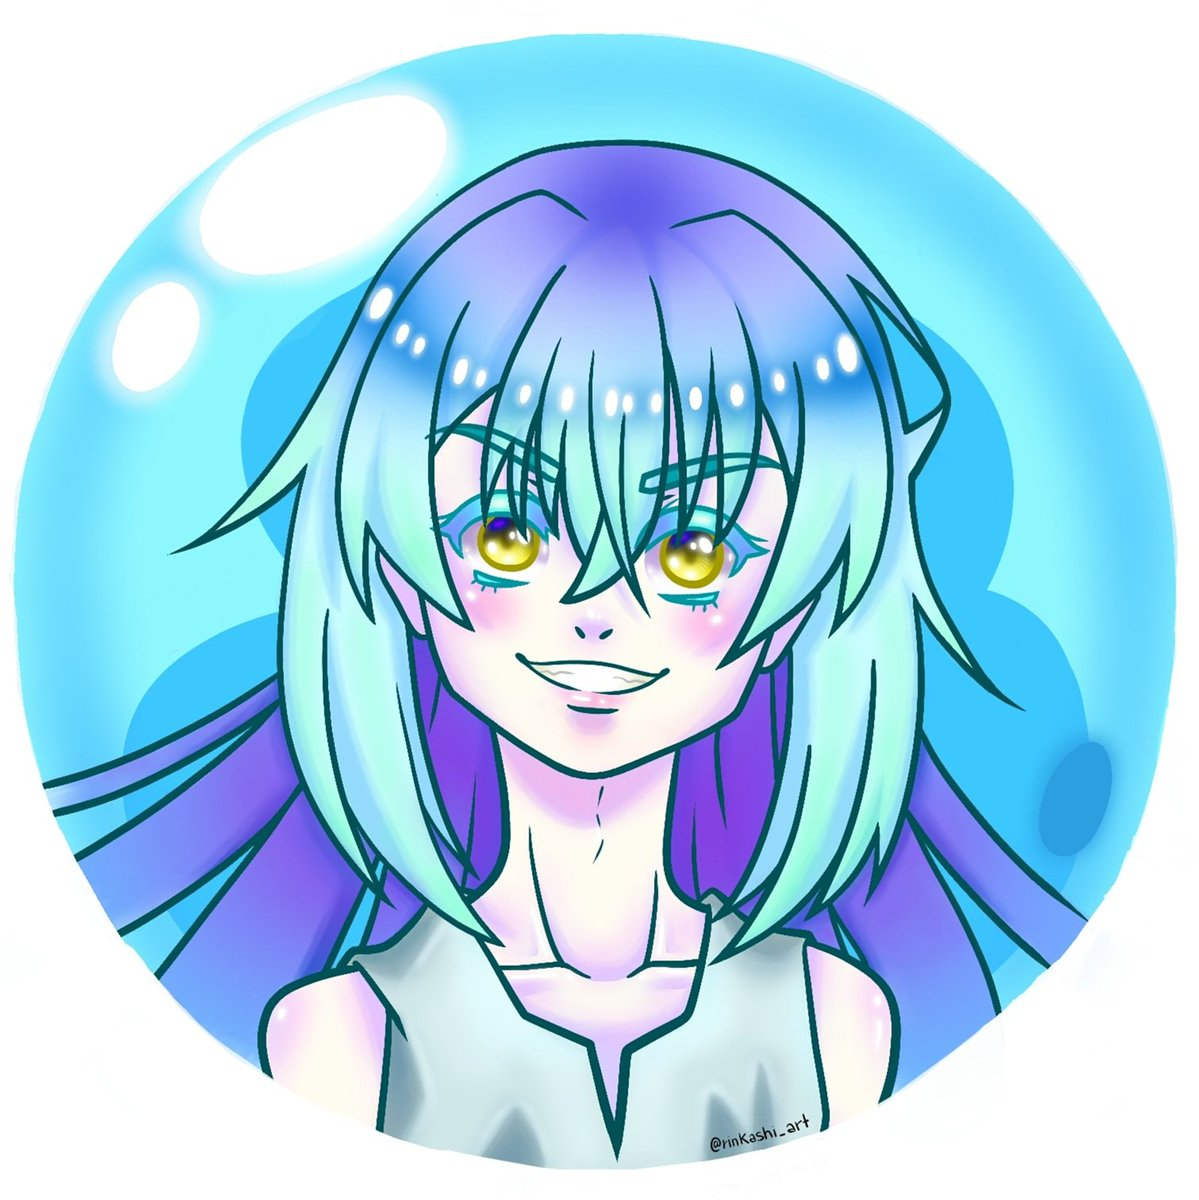 🔵🌟I'm not a bad slime!~🌟🔵 · · · 🔮RIMURU TEMPEST🔮 #drawing #paint #painting #digitaldraw #illustration #animedrawing #animeart #boy #girl #nogender #slime #thattimeigotreincarnatedasaslime #thattimeigotreincarnatedasaslimefanart #fanart #smile #happy #confident #mystyle https://t.co/ybVR3VbIE9